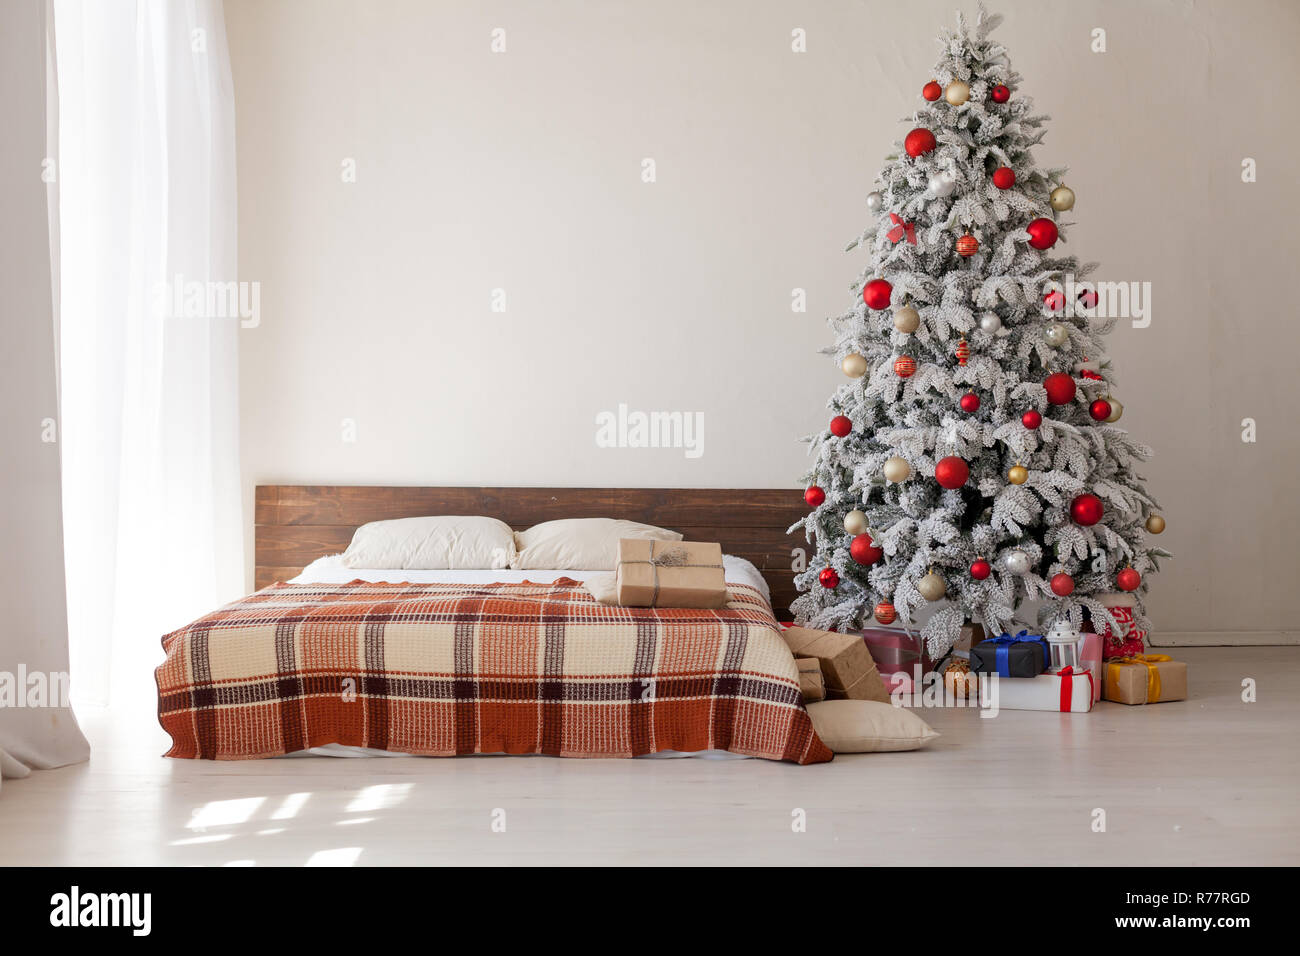 Camera Da Letto Matrimoniale In Regalo.Albero Di Natale In Camera Da Letto Matrimoniale Letto Regali Di